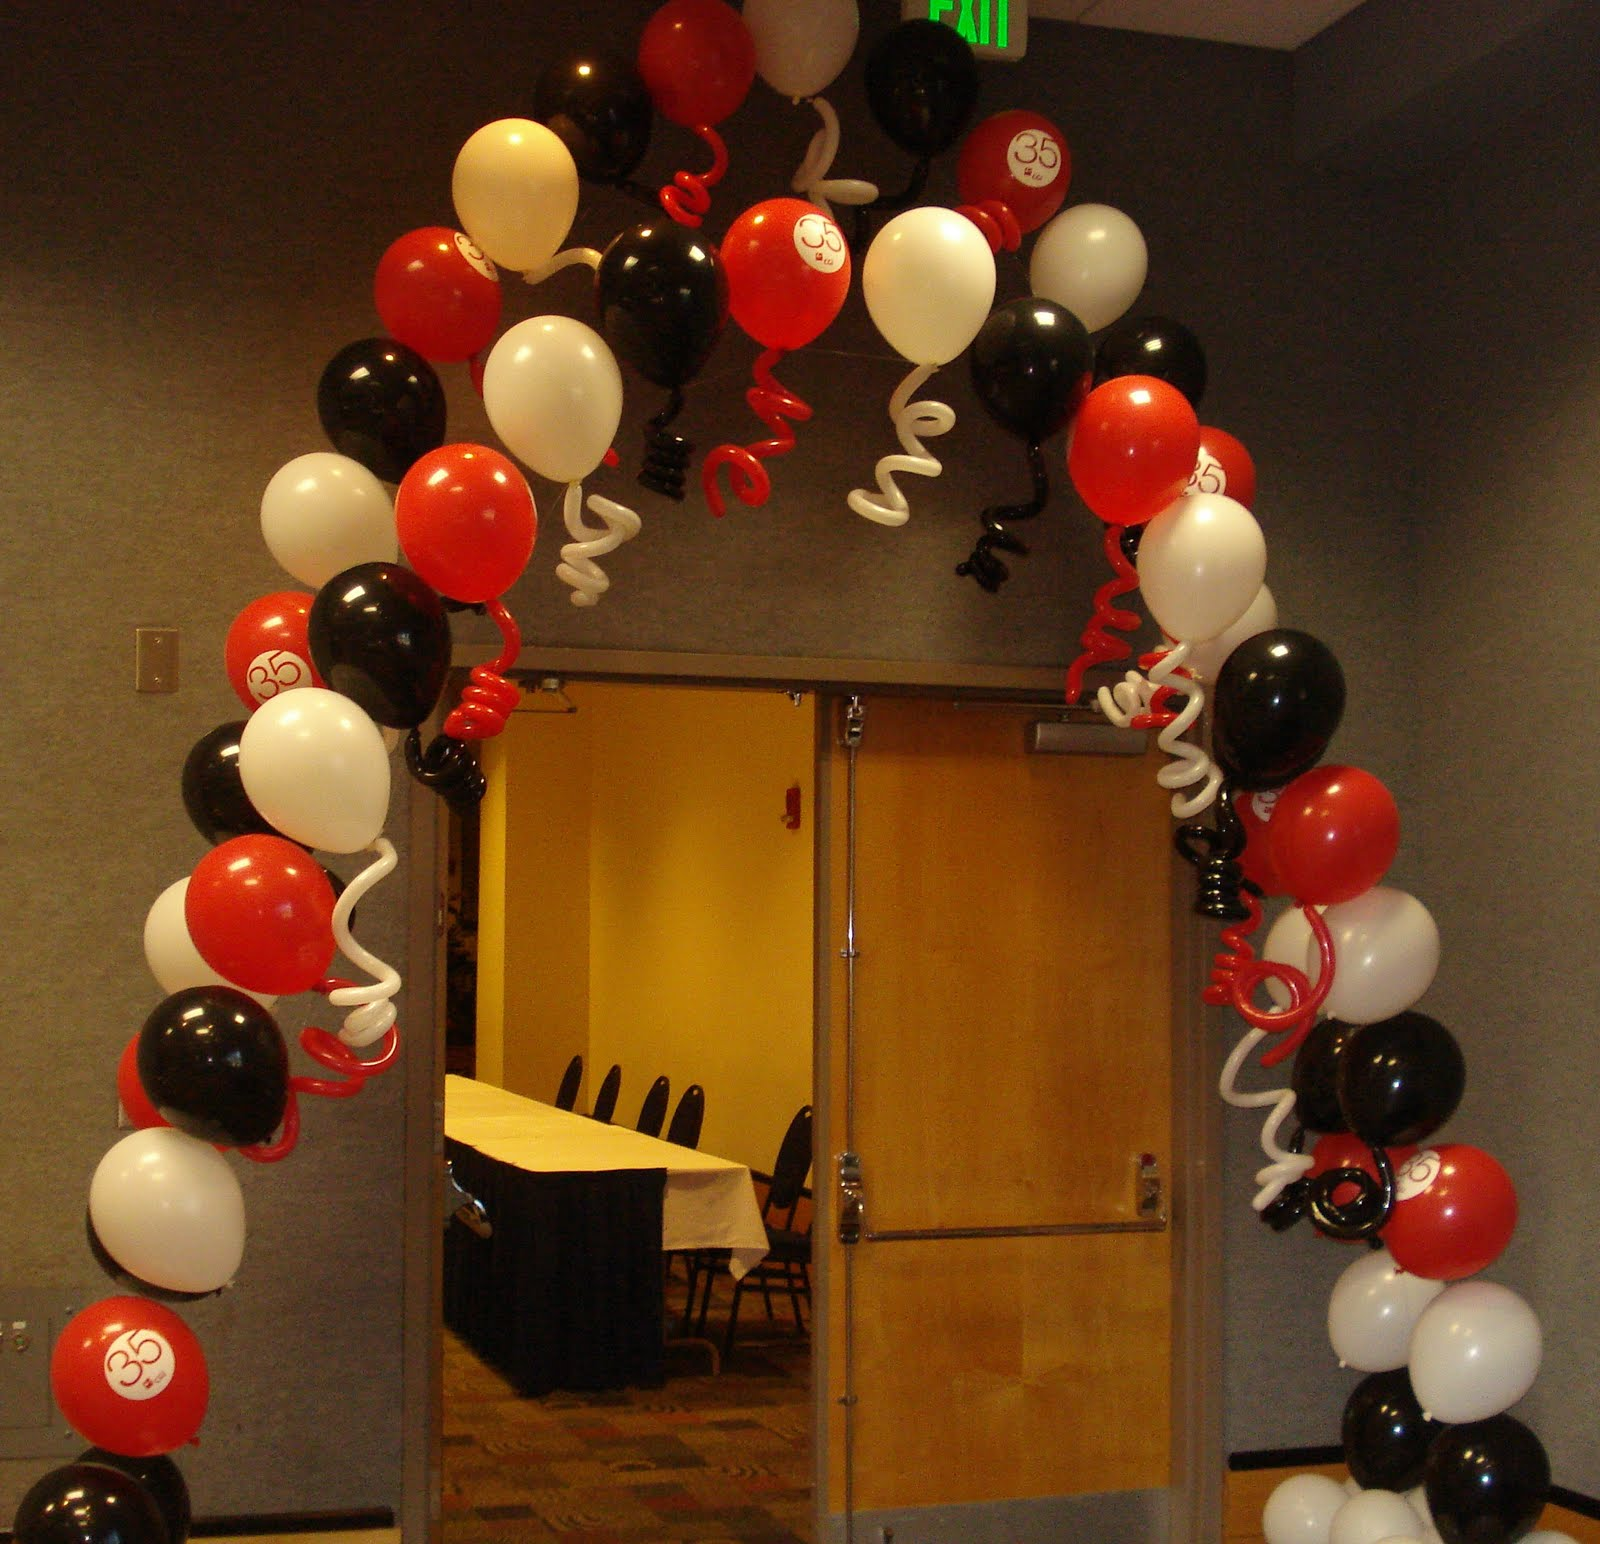 The Twisted Flower: Decorating With Balloons